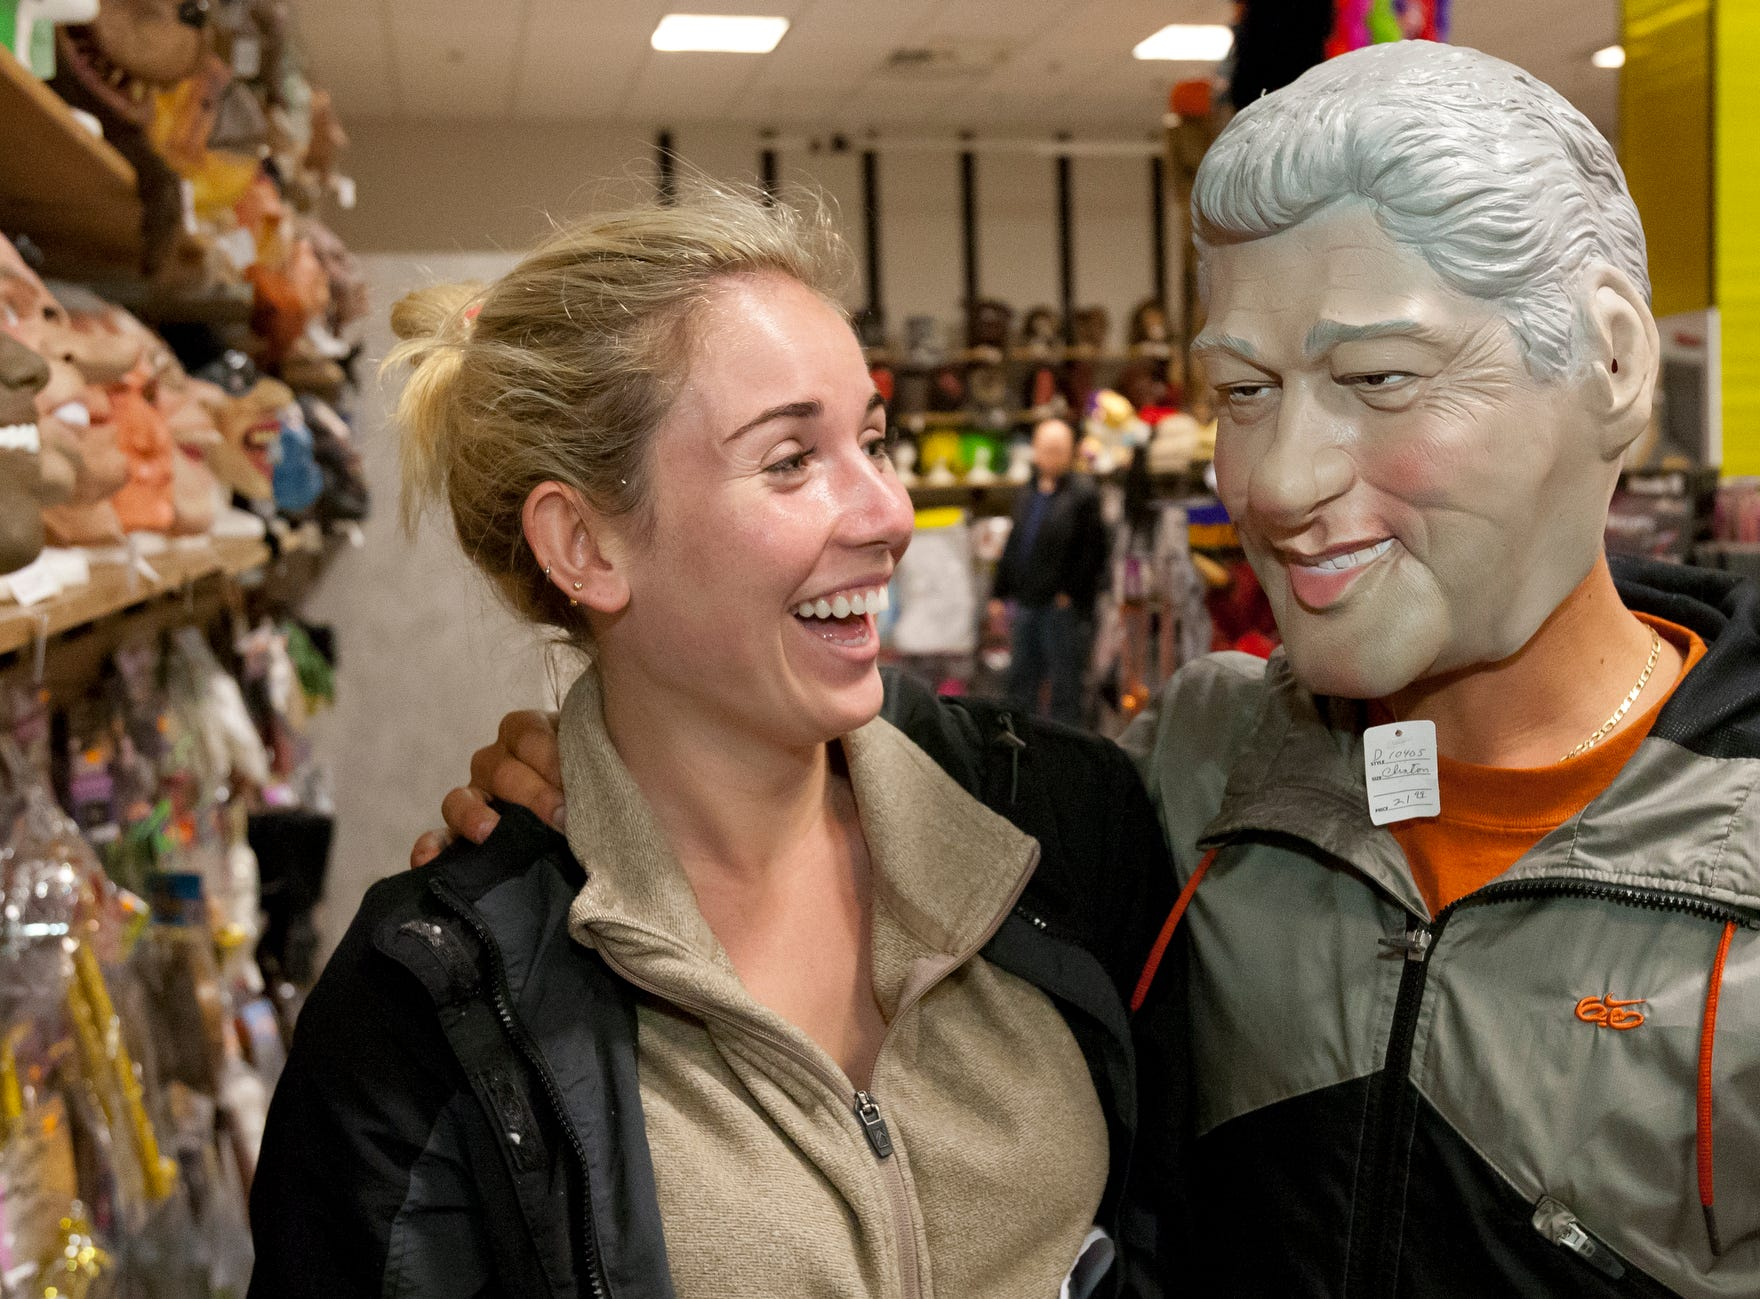 2013: Sarah Greenberg, a Cornell University junior from San Clemente Calif. shops for Halloween masks with her boyfriend Joe Maltese, who was visiting from San Clemente, at the Costume Place at The Shops at Ithaca Mall.